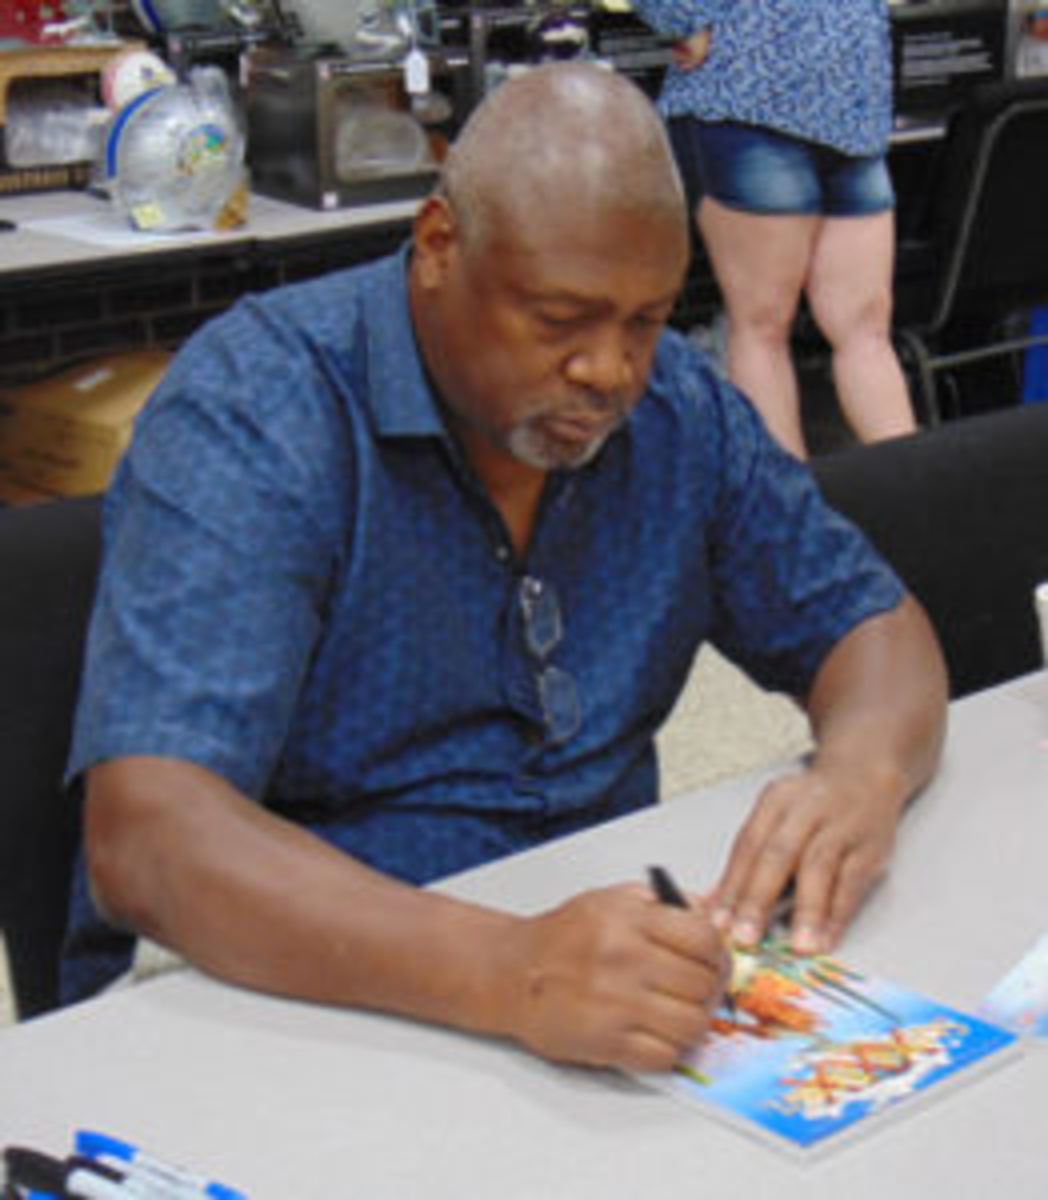 Charles Haley signs an autograph at the Crave the Auto Show in Canton. (Robert Kunz photo)